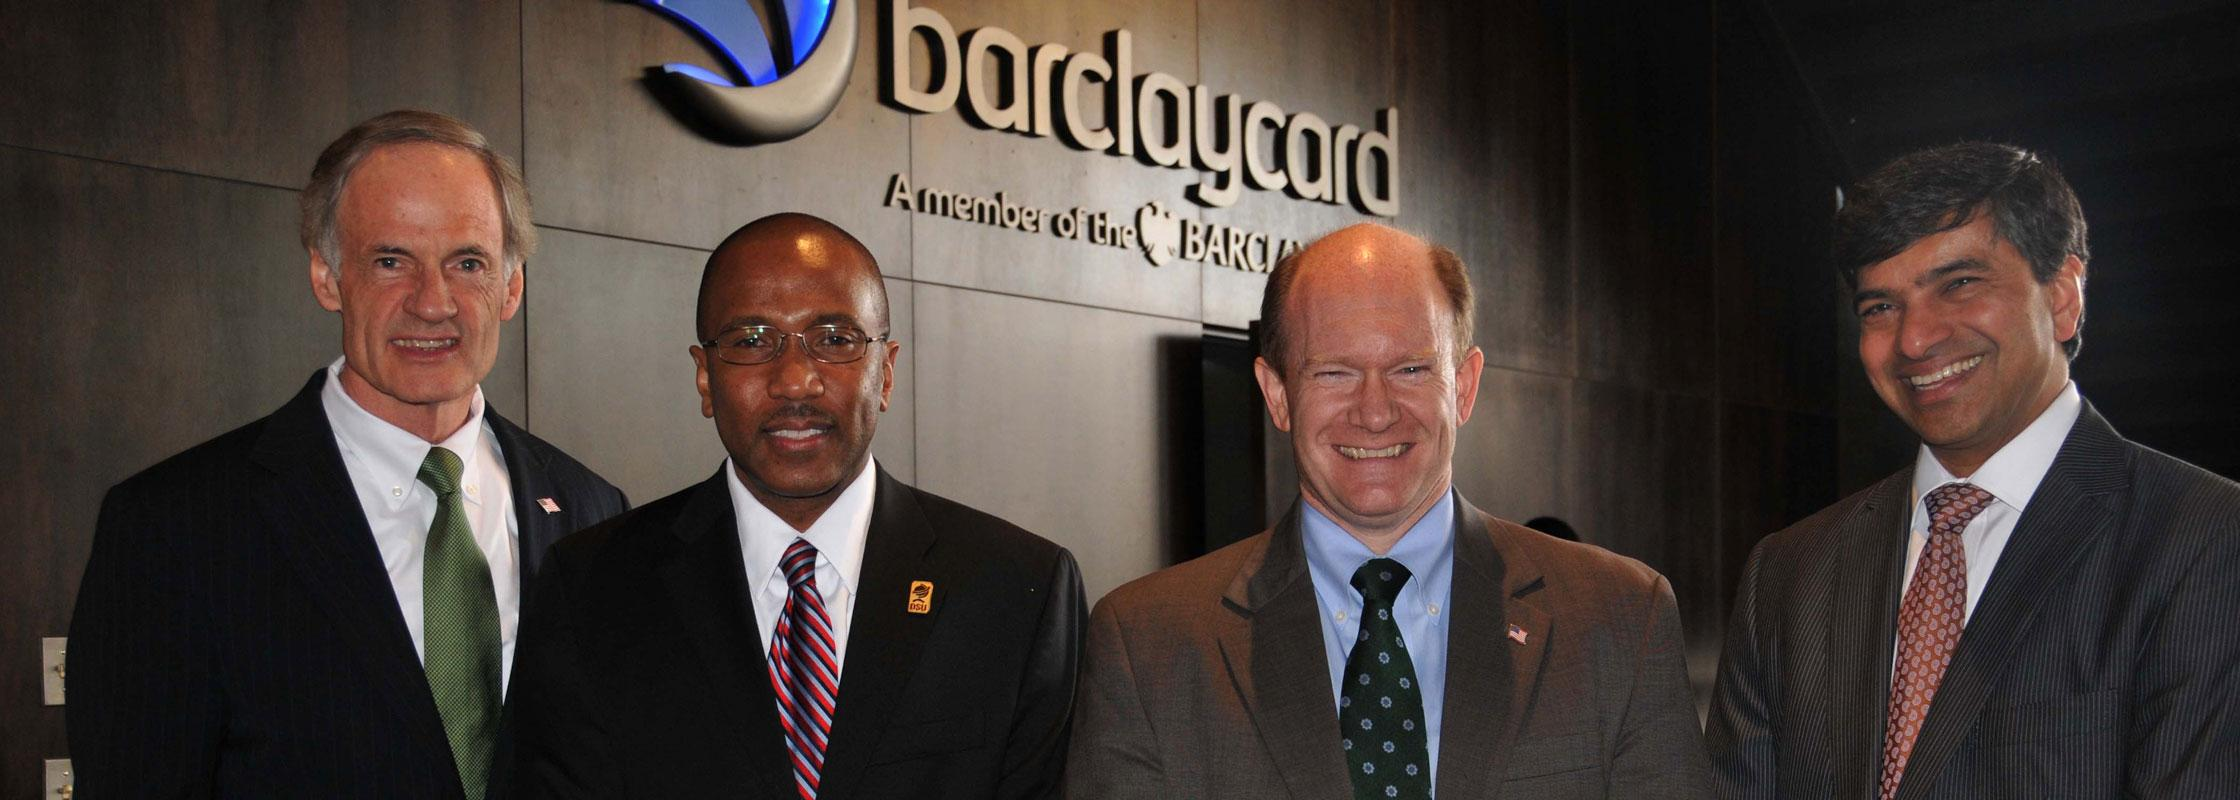 barclaycard grant announcement